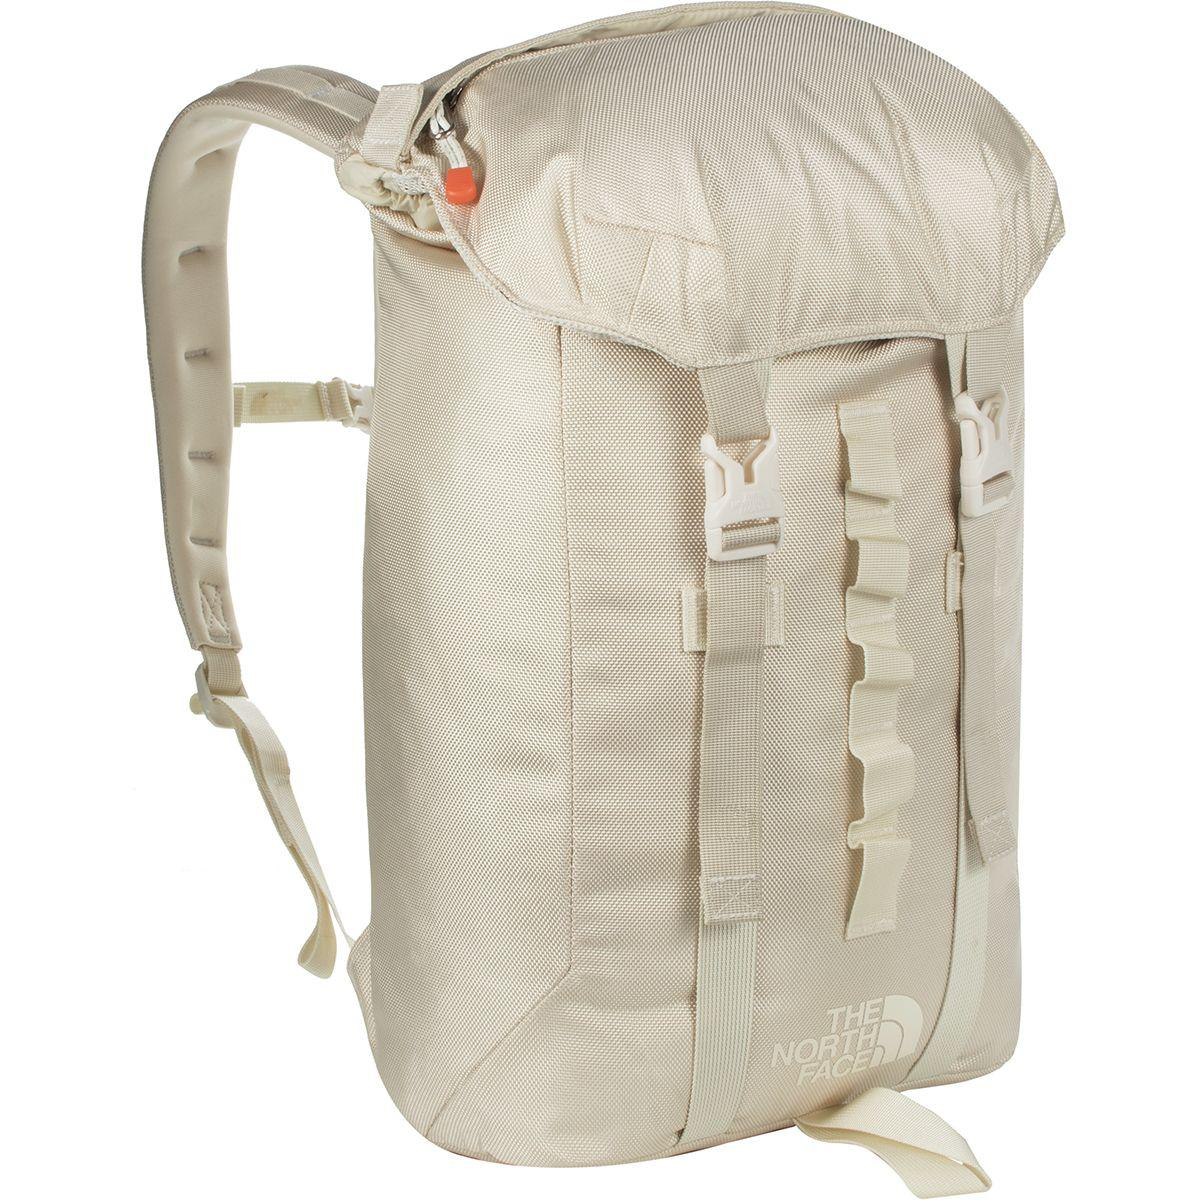 f5c478550 The North Face White Lineage Ruck 23l Backpack for men